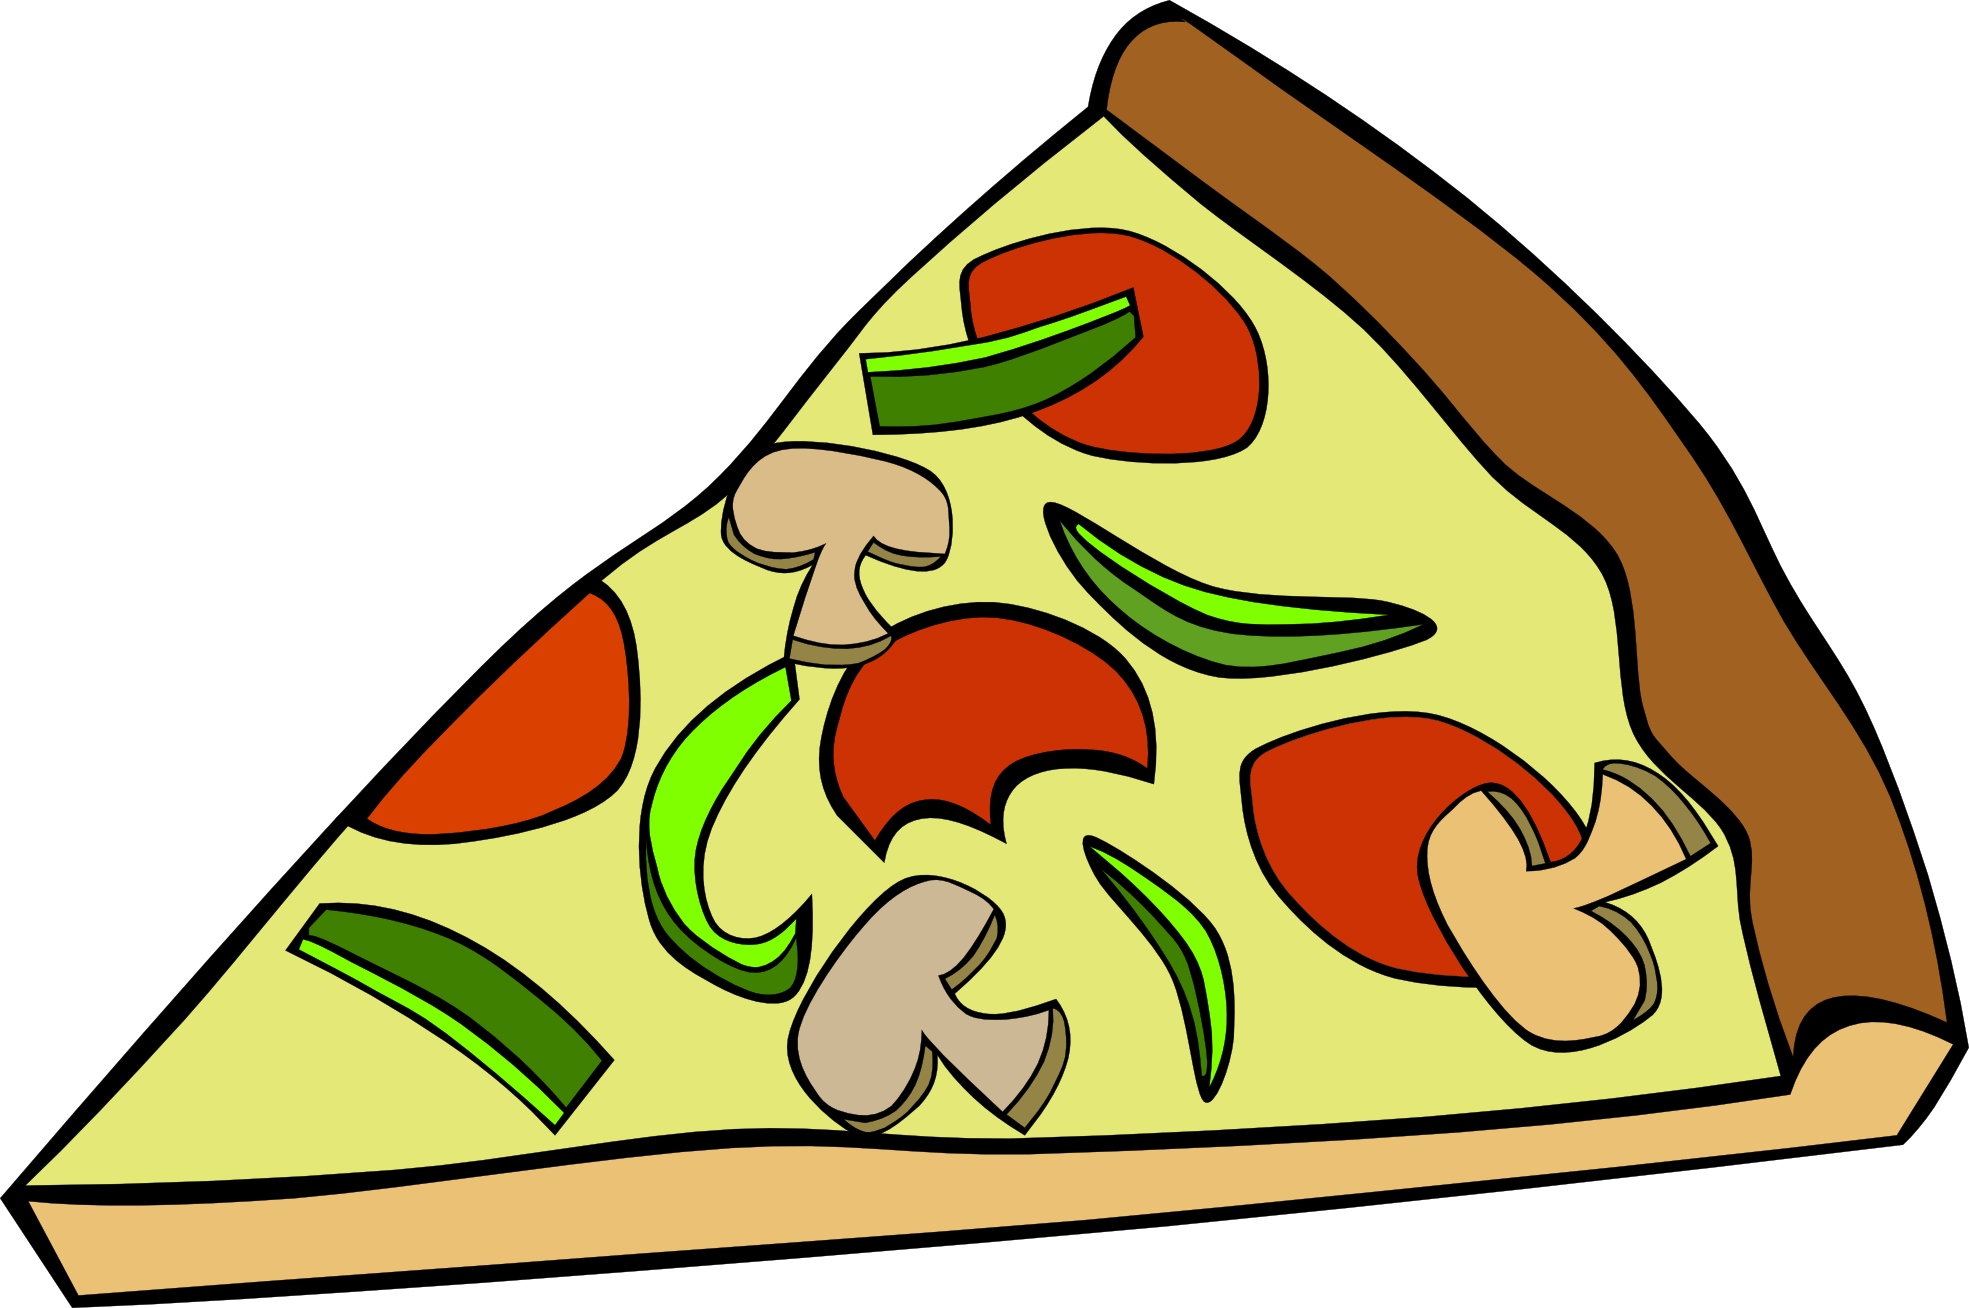 Student lunch clipart